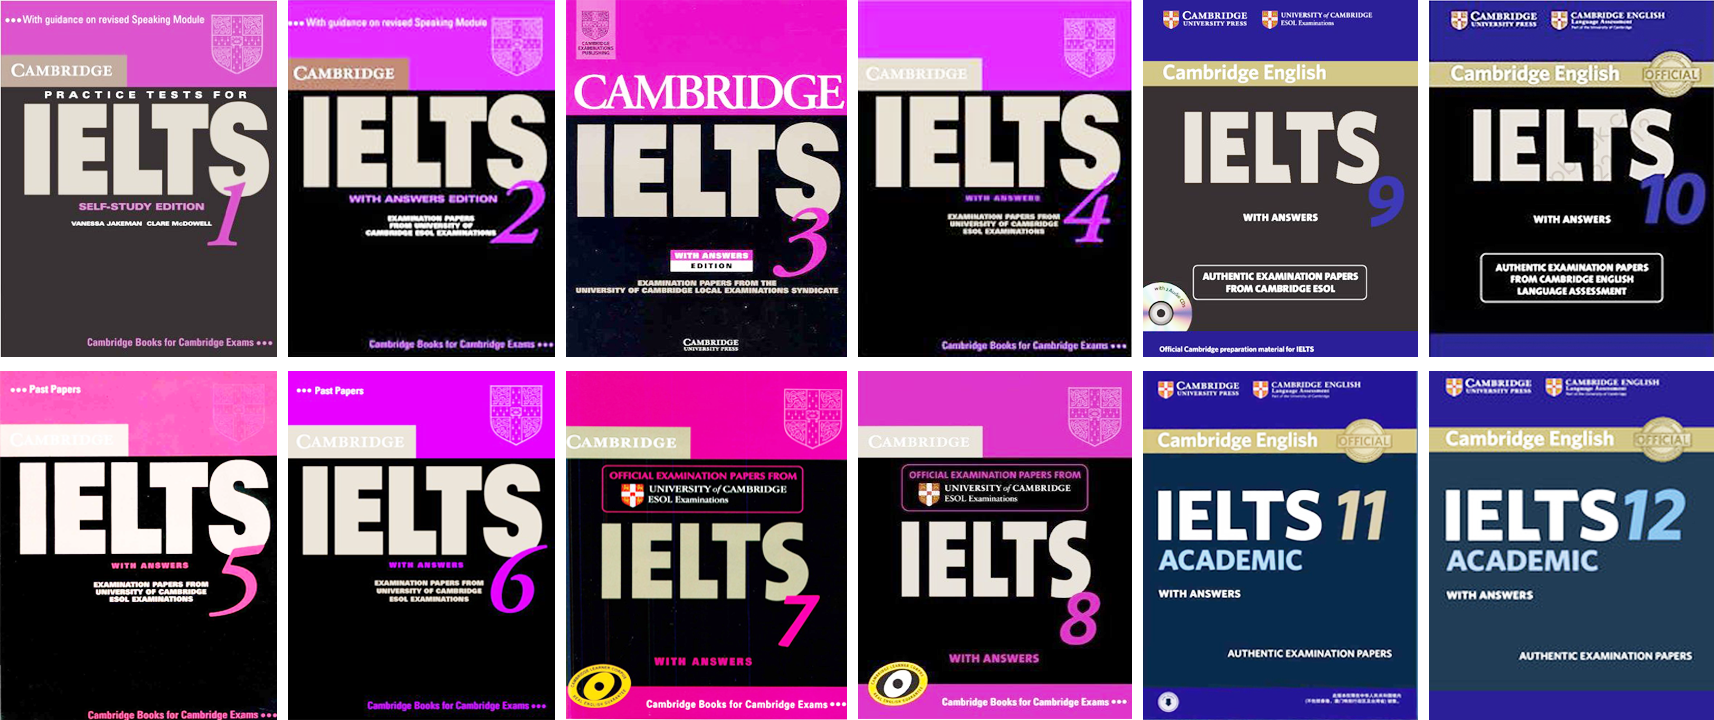 Cambridge ielts 1-12